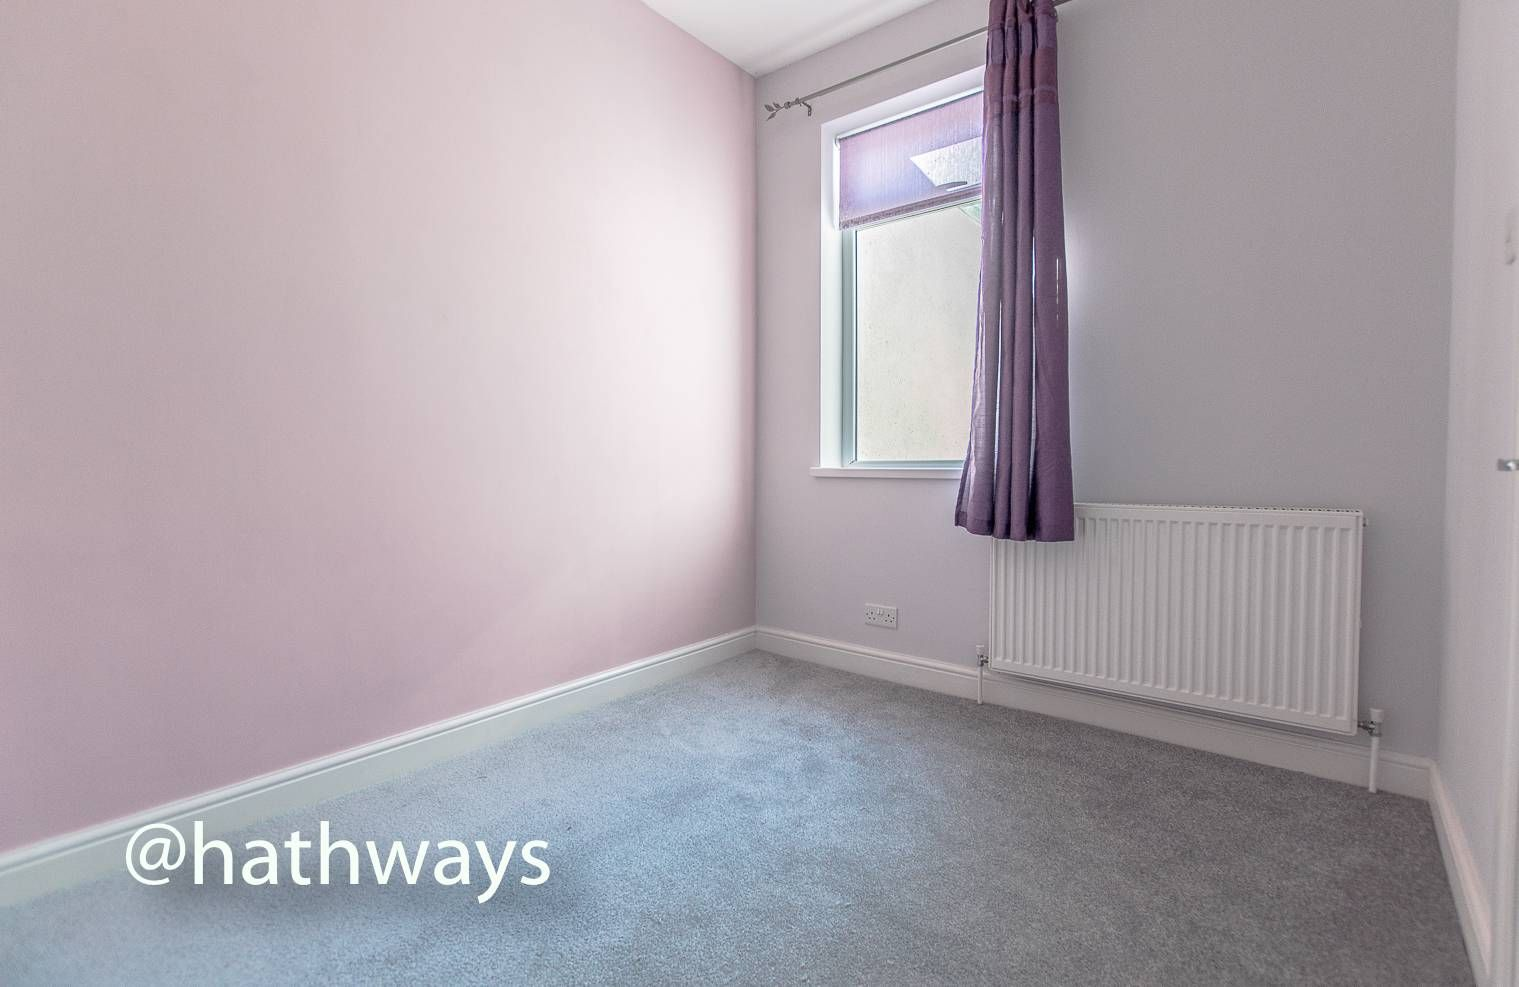 3 bed house for sale in Glenview  - Property Image 22